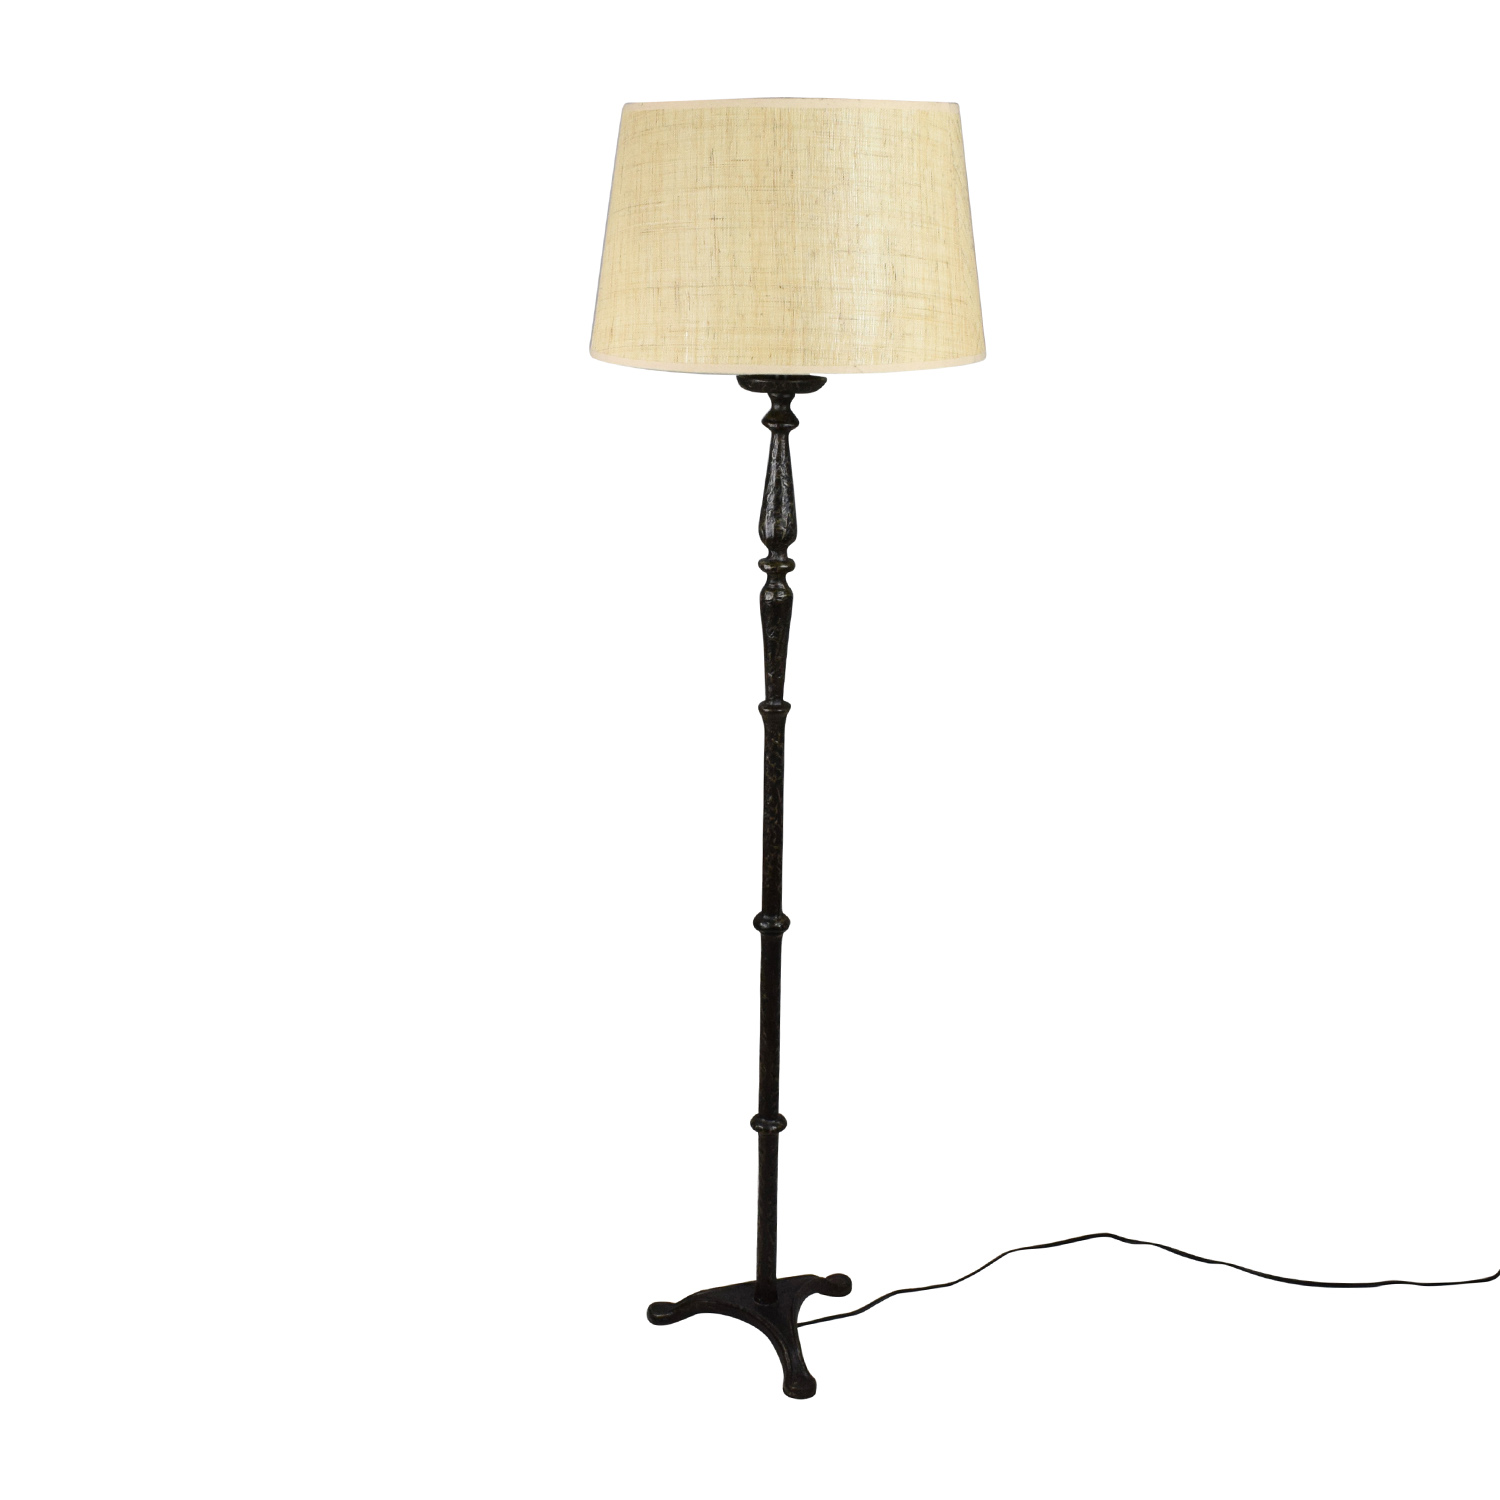 buy Pottery Barn Floor Lamp Pottery Barn Decor